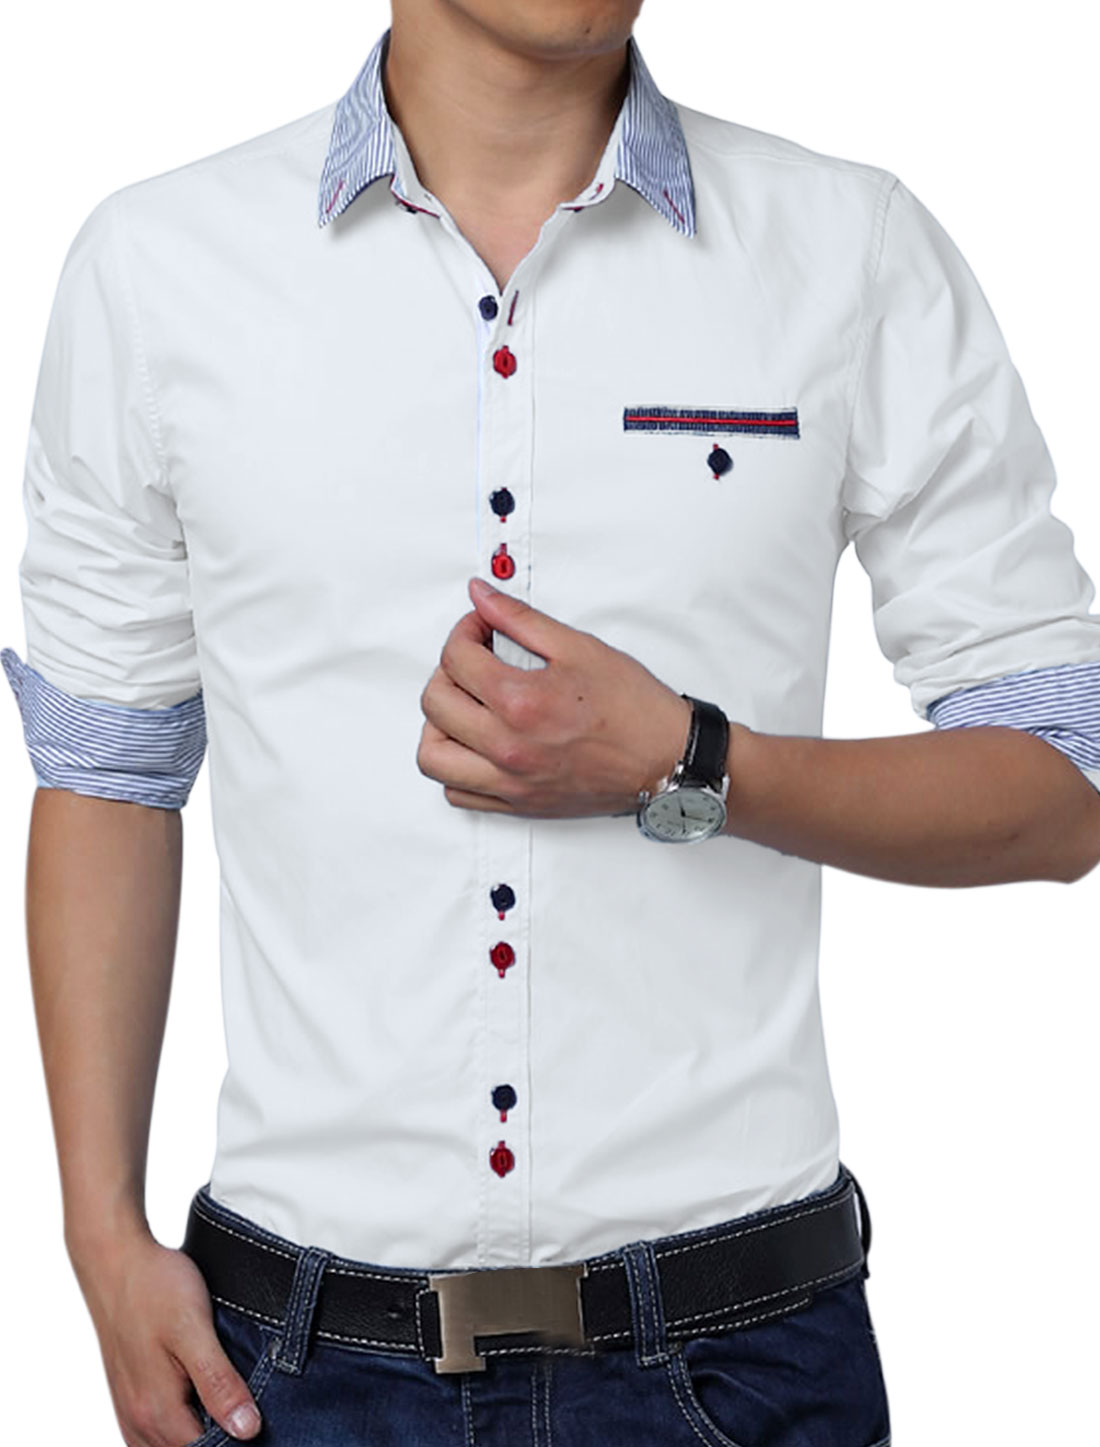 Men Single Breasted Embroidery Detail Button Down Top Shirt White L